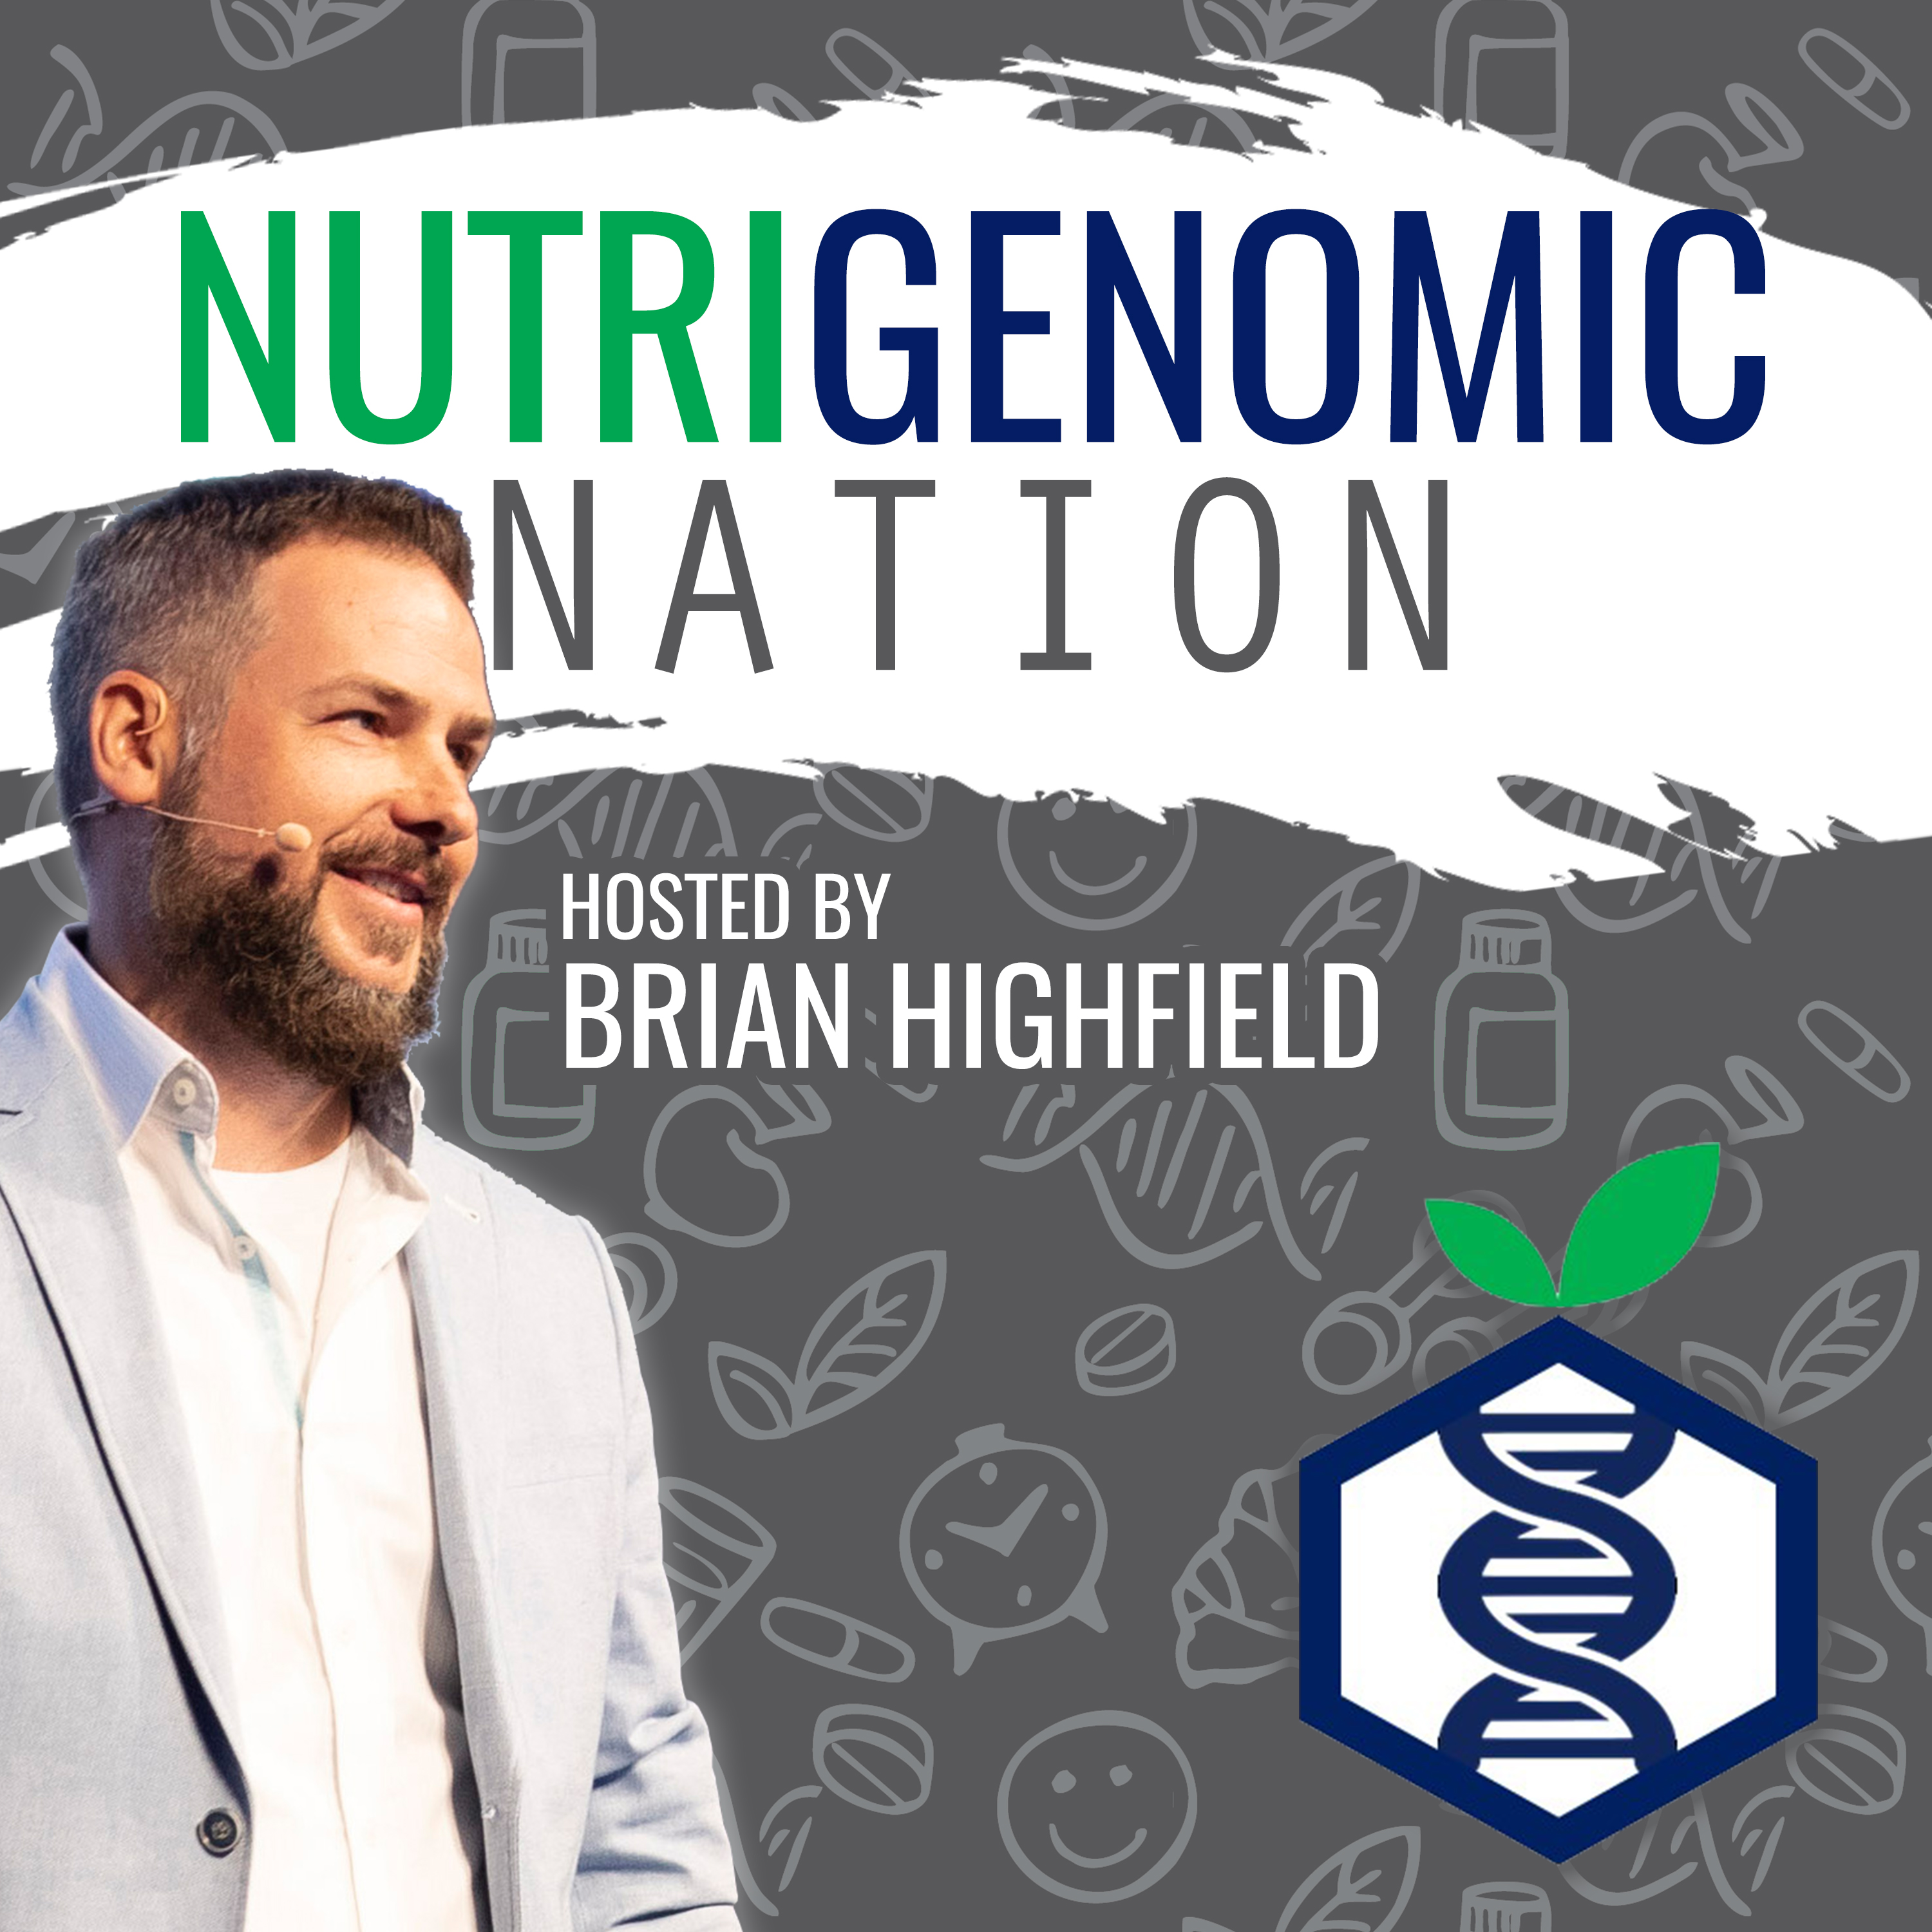 Nutrigenomic Nation